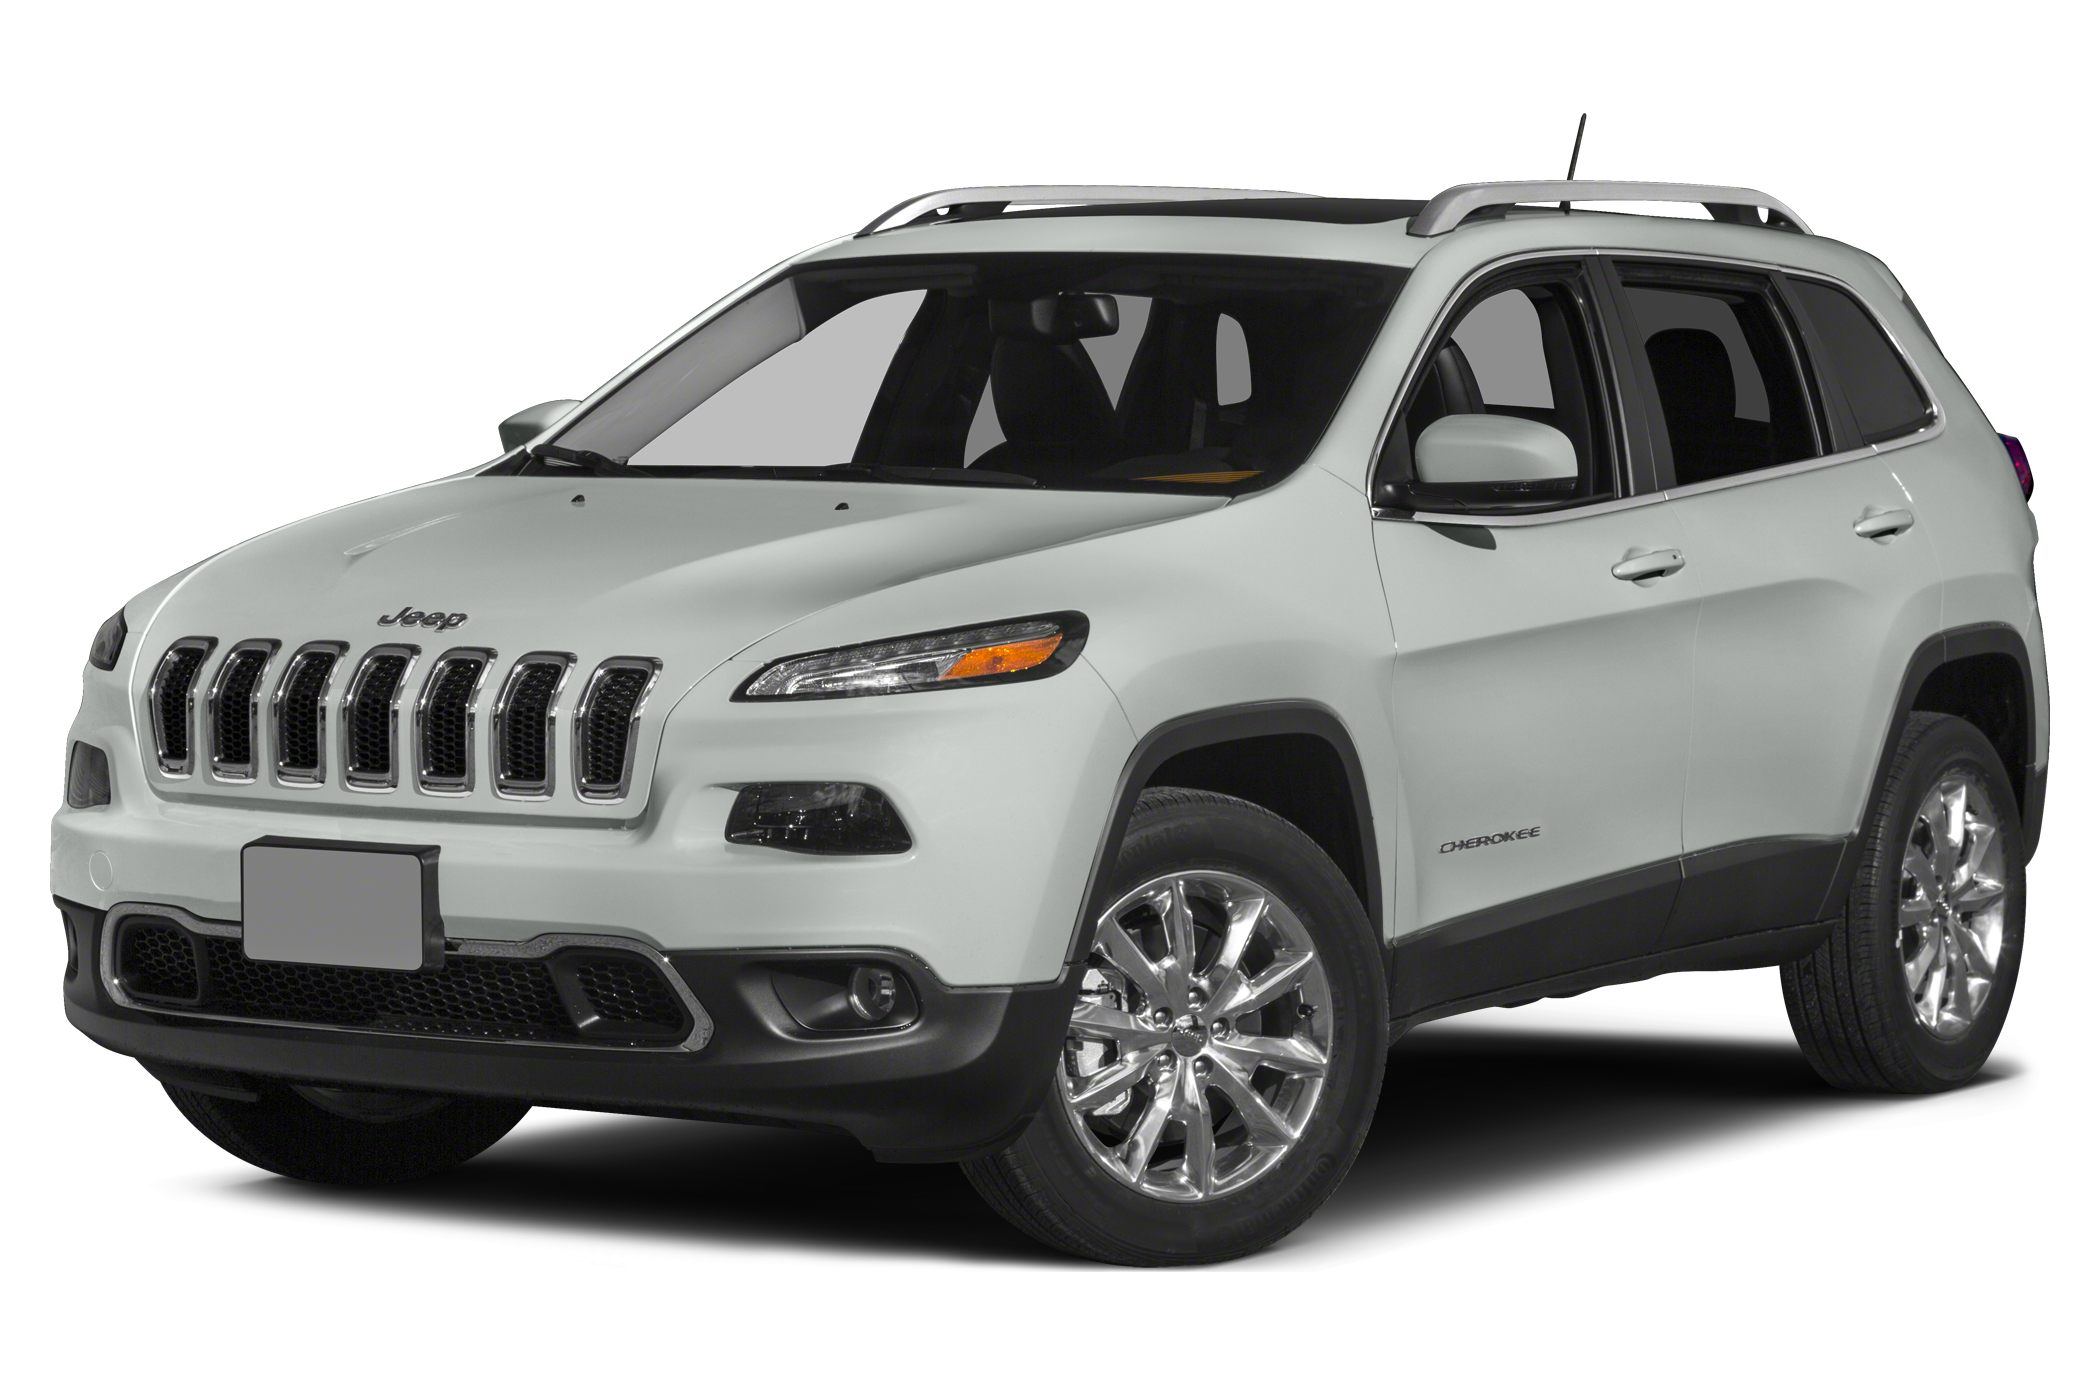 2015 Jeep Cherokee Limited SUV for sale in Columbus for $35,875 with 0 miles